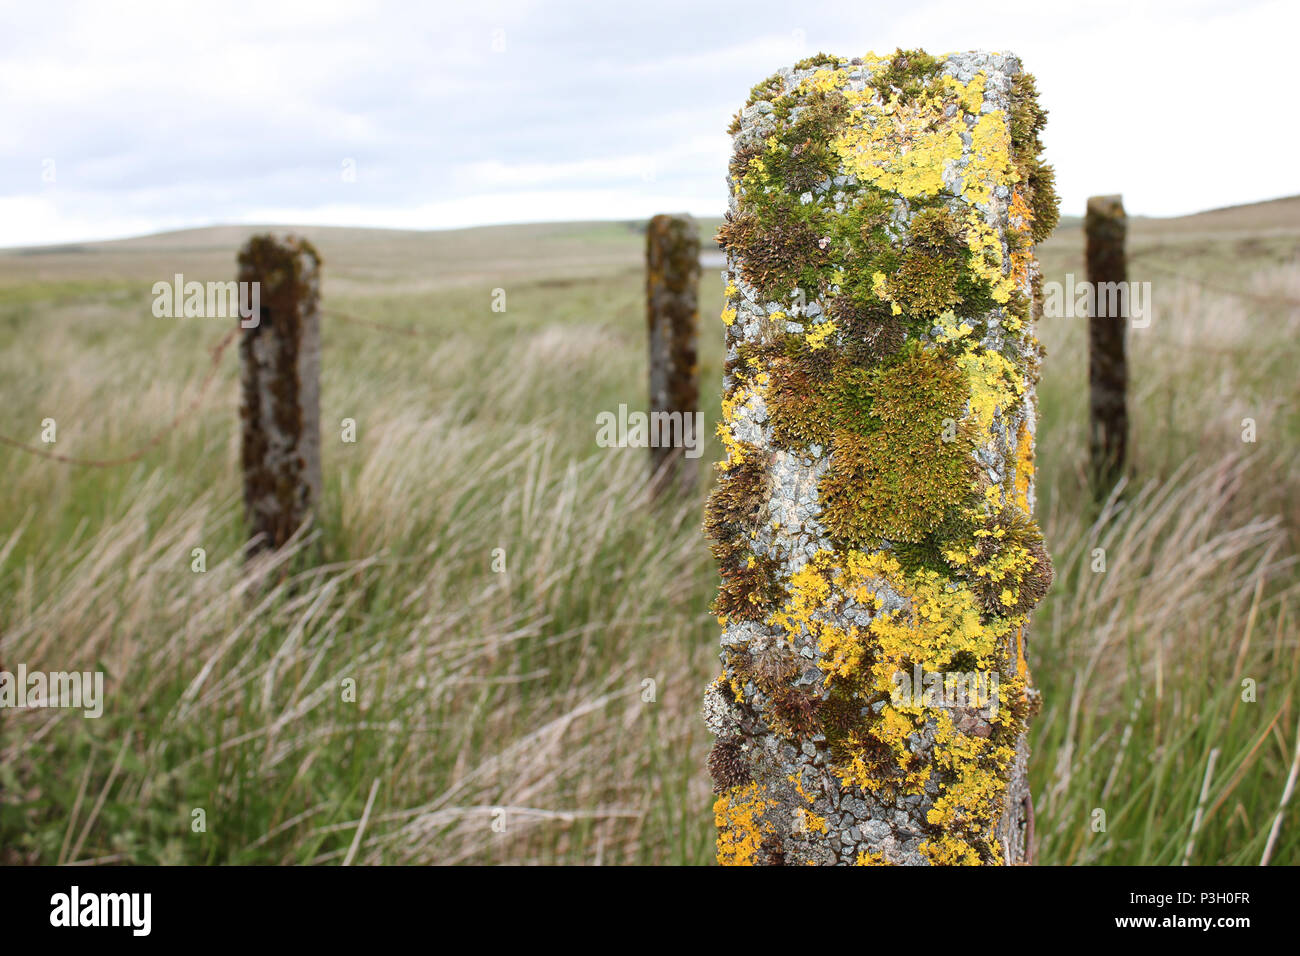 Lichen and Moss On Fencepost - Stock Image